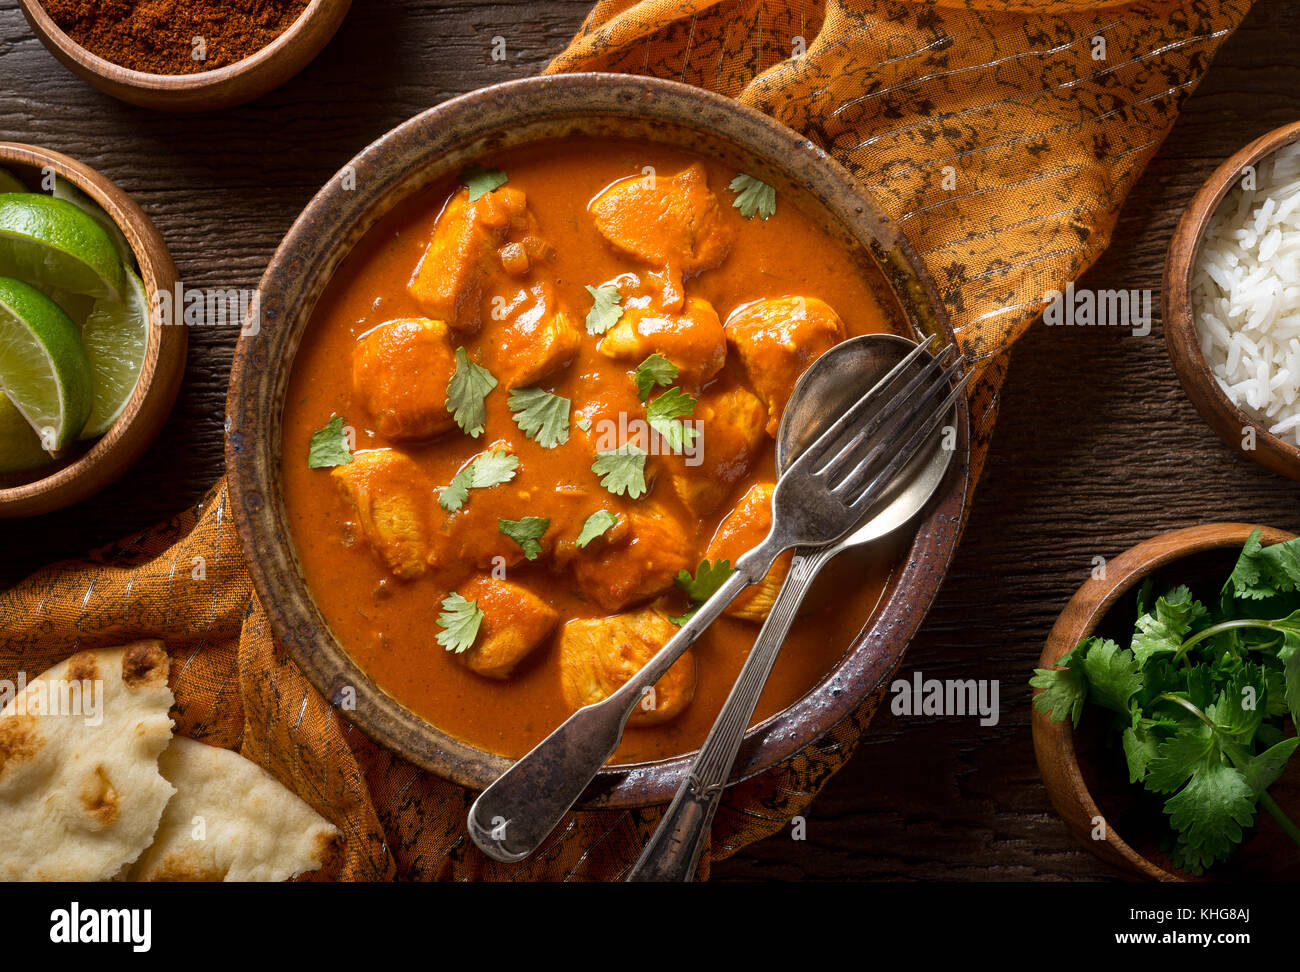 A bowl of delicious indian butter chicken curry with naan bread, basmati rice, and cilantro garnish. - Stock Image